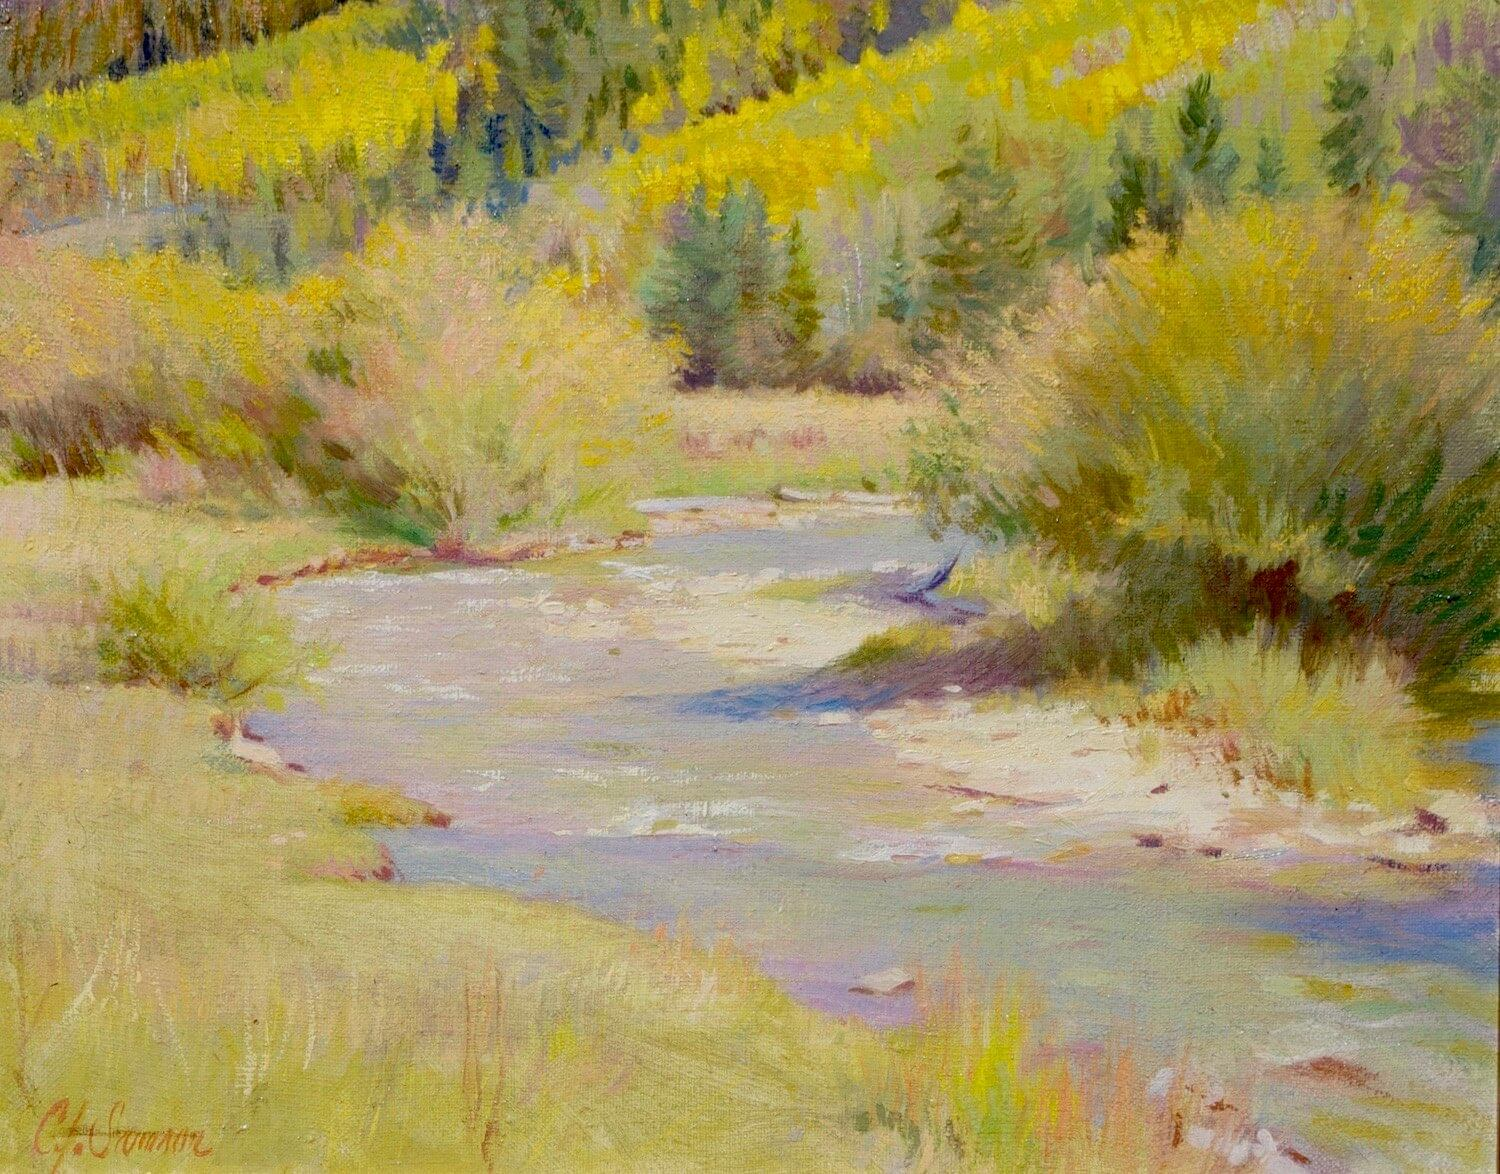 "River near Ashcroft, Colorado , 16"" x 20"", oil on linen canvas"